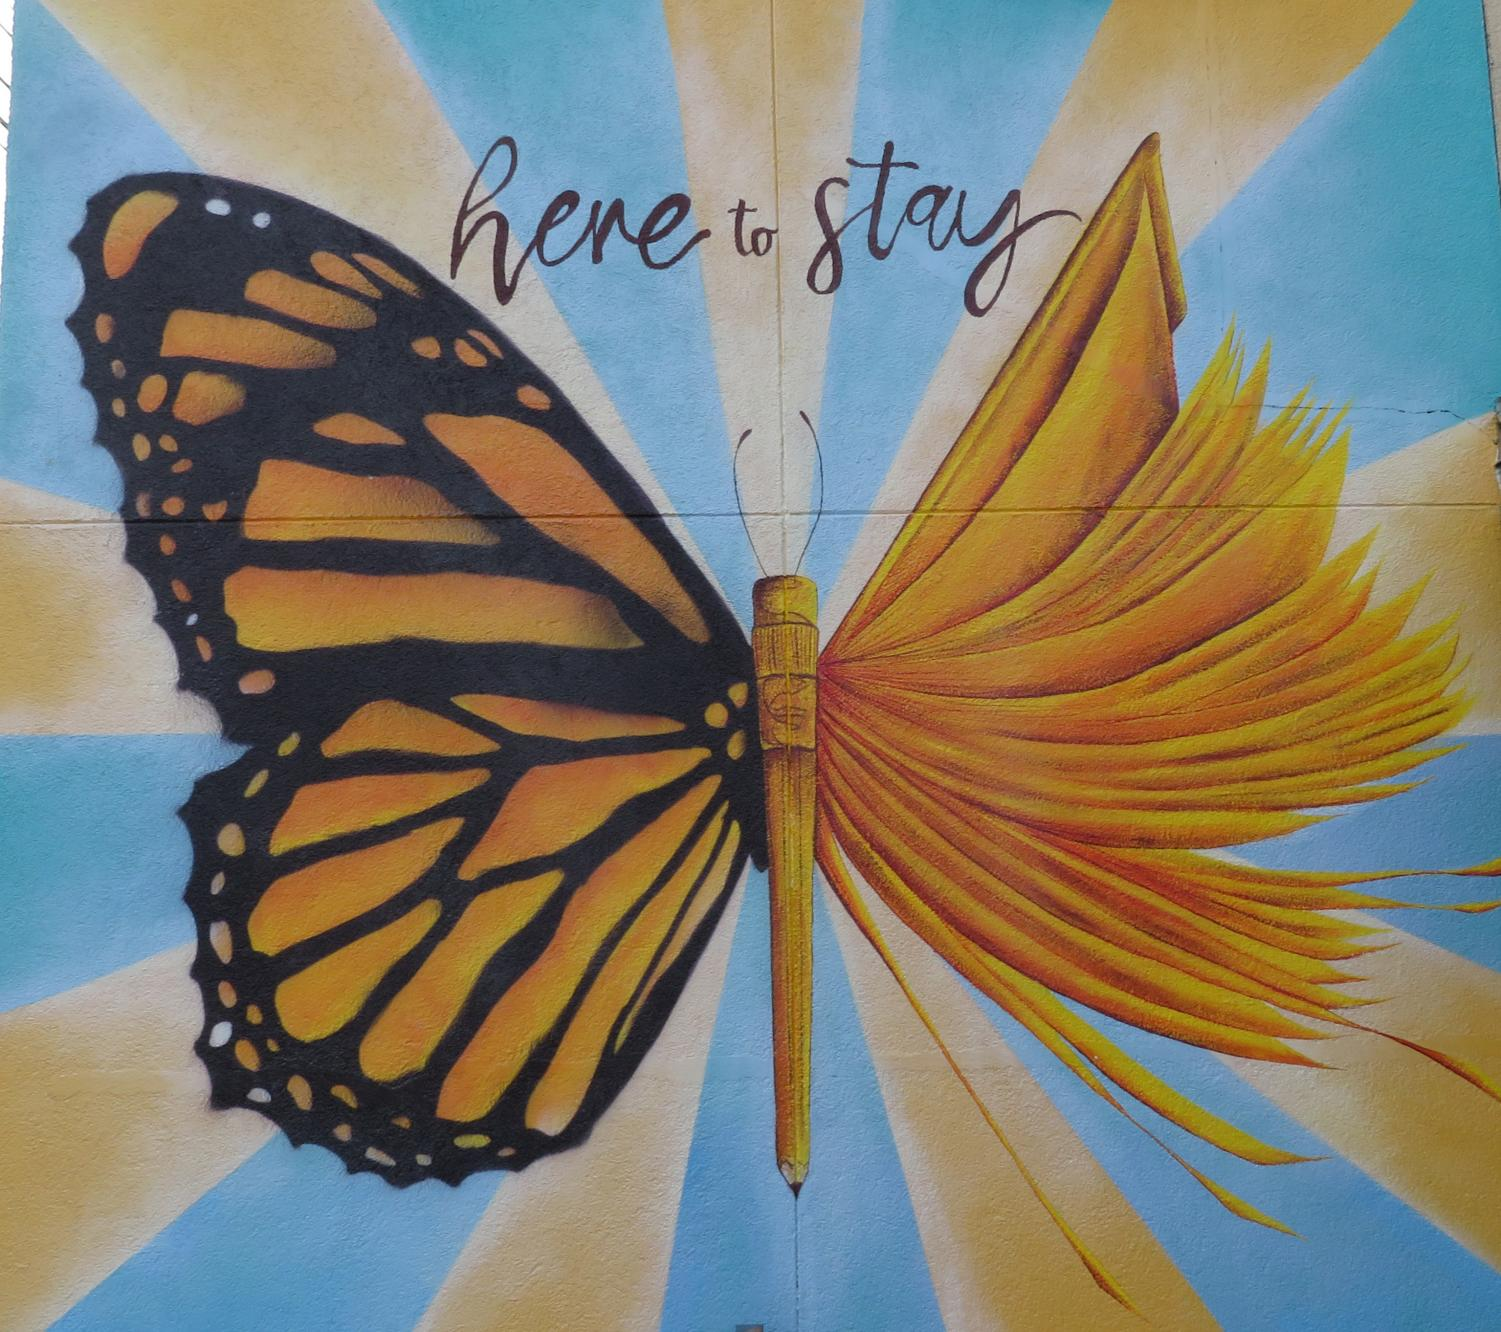 #Here to stay: This mural at the Latin American Association is a design by Yehimi Cambron, an Atlanta based artist and DACA advocate. Cambron uses her platform to promote immigrant rights.